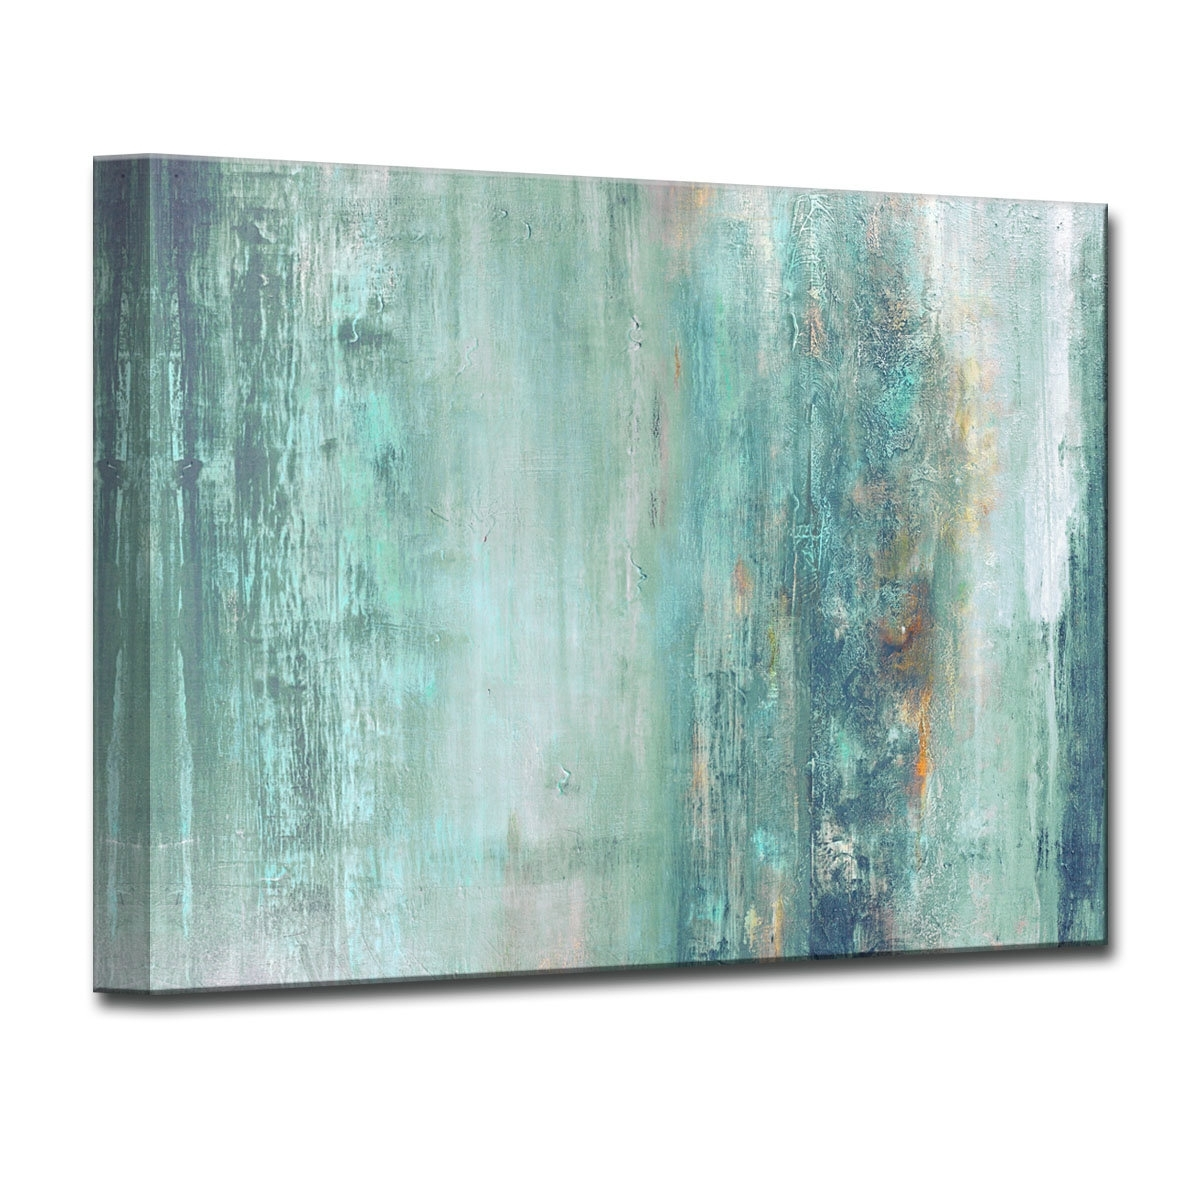 Beachcrest Home 'abstract Spa' Framed Graphic Art Print On Canvas Regarding Most Recent Blue And Brown Abstract Wall Art (View 15 of 20)